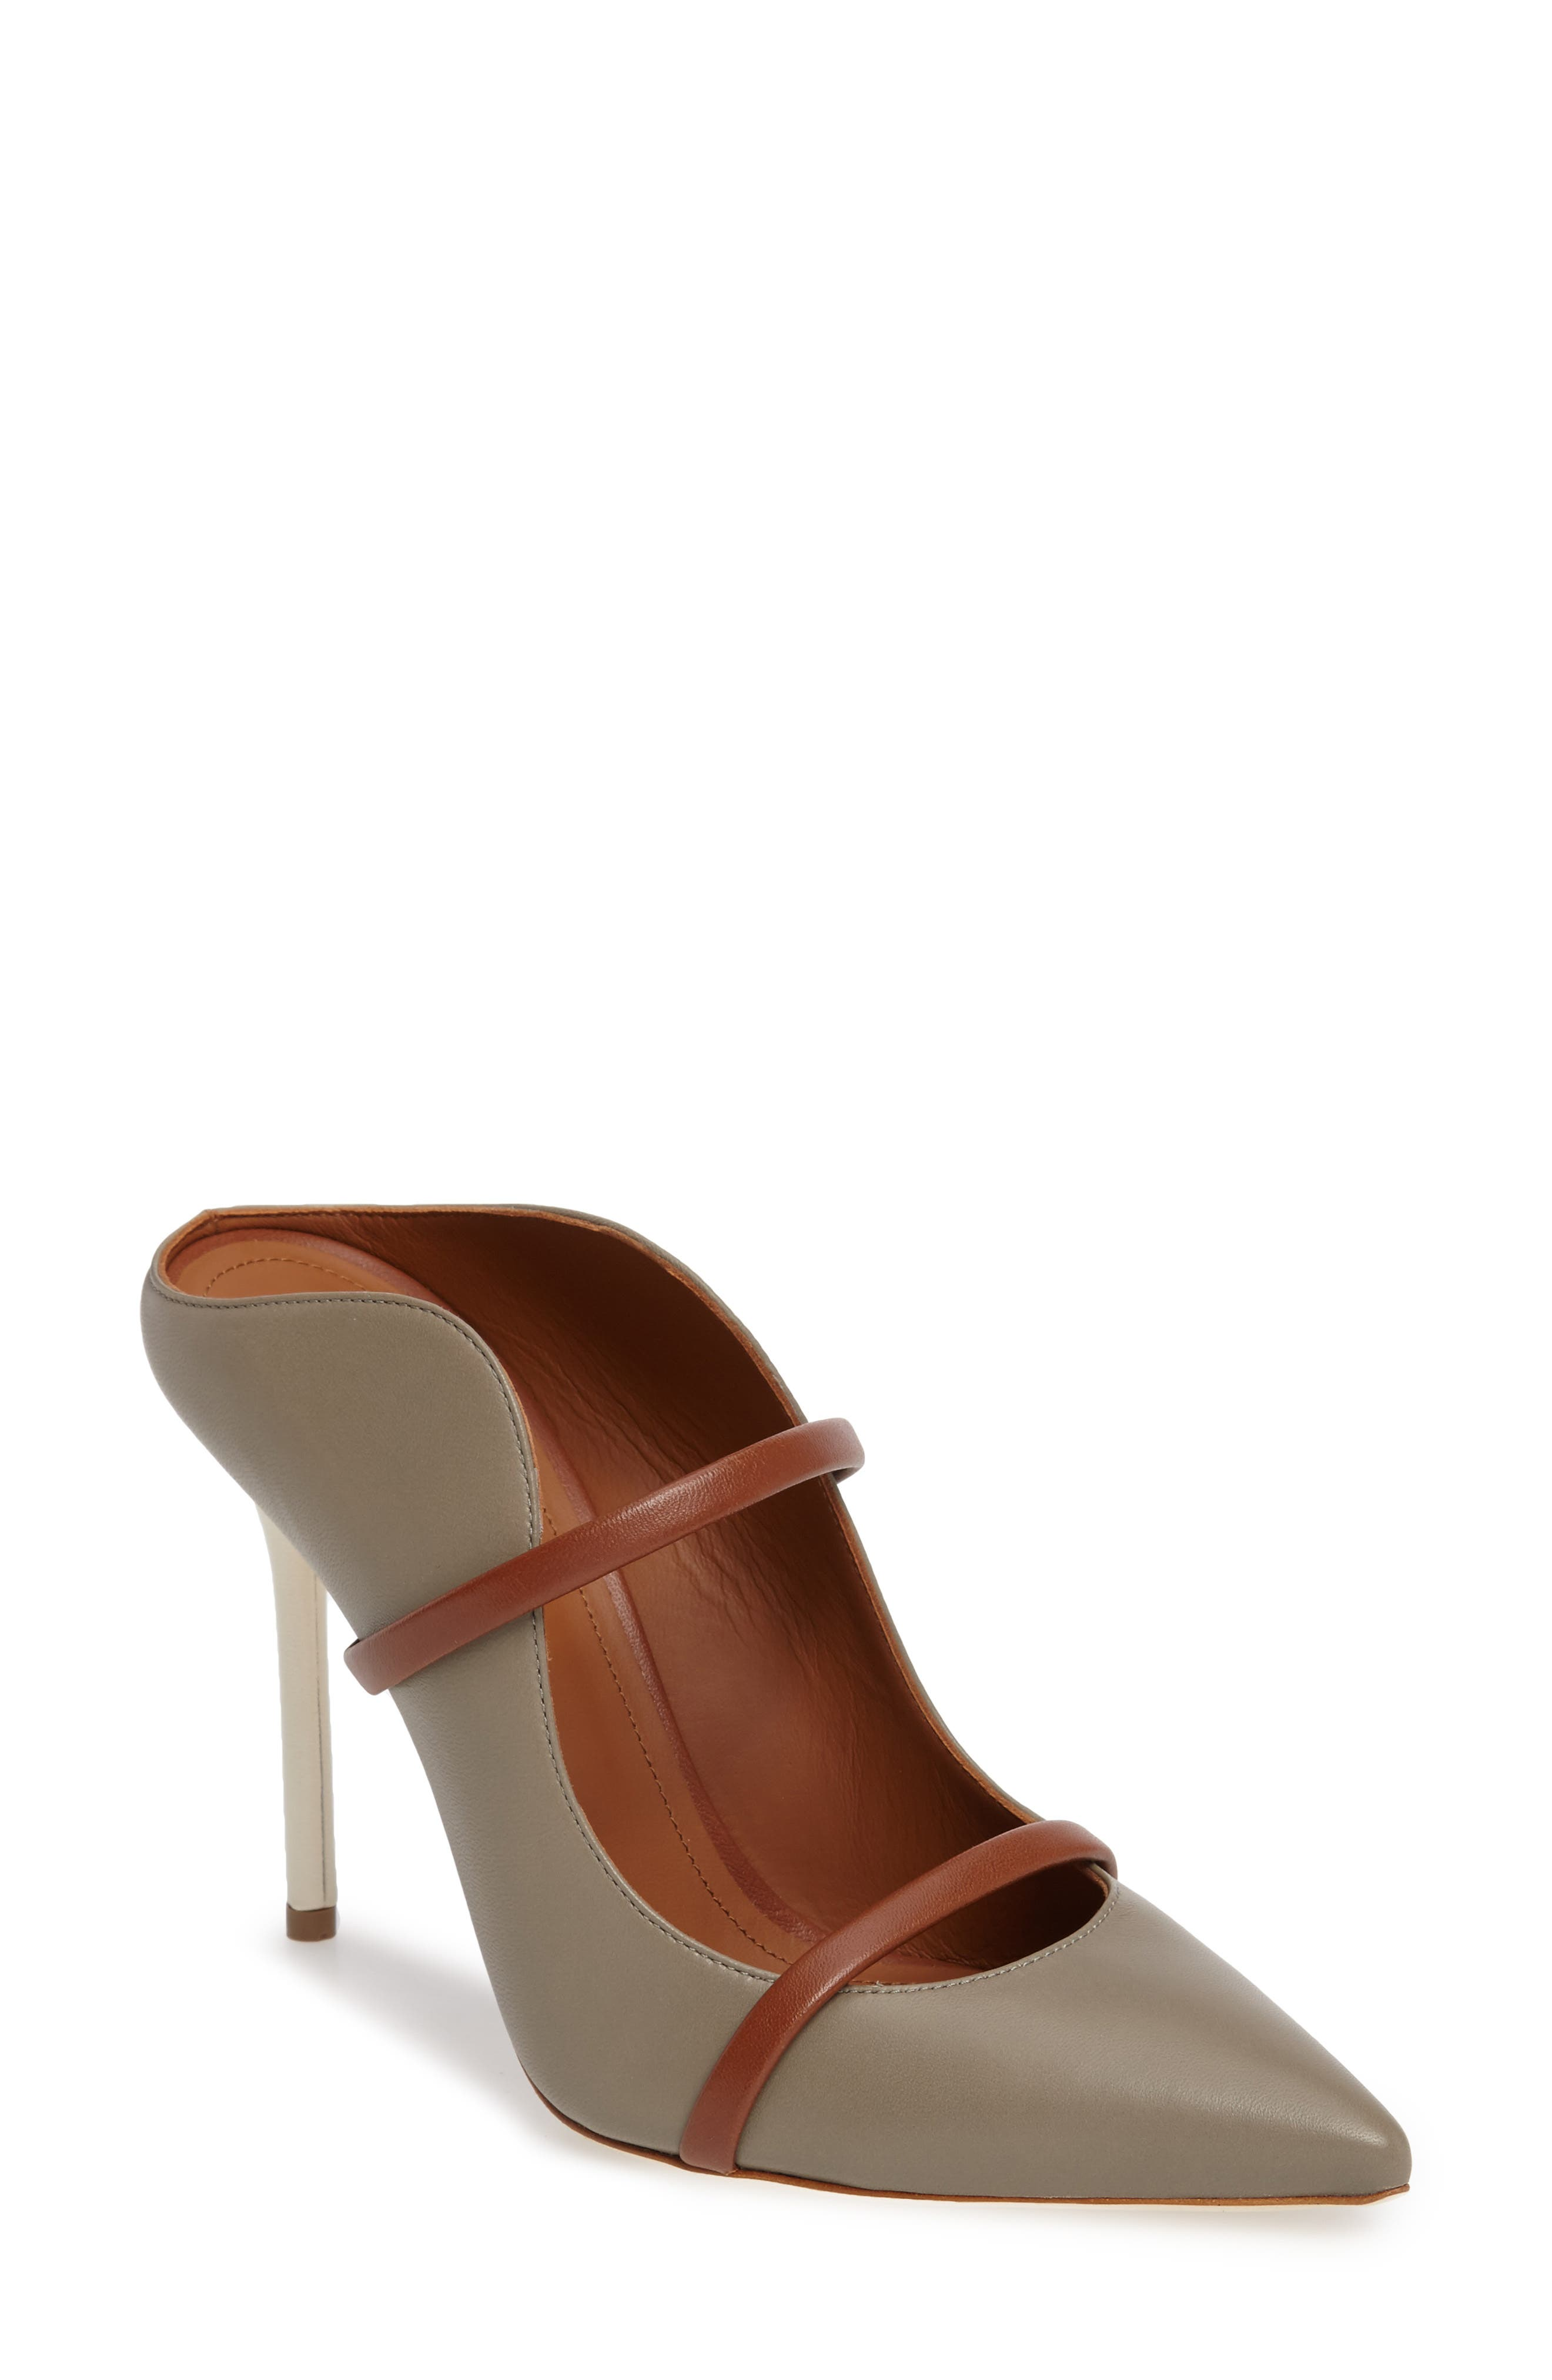 MALONE SOULIERS,                             'Maureen' Pointy Toe Mule,                             Main thumbnail 1, color,                             025